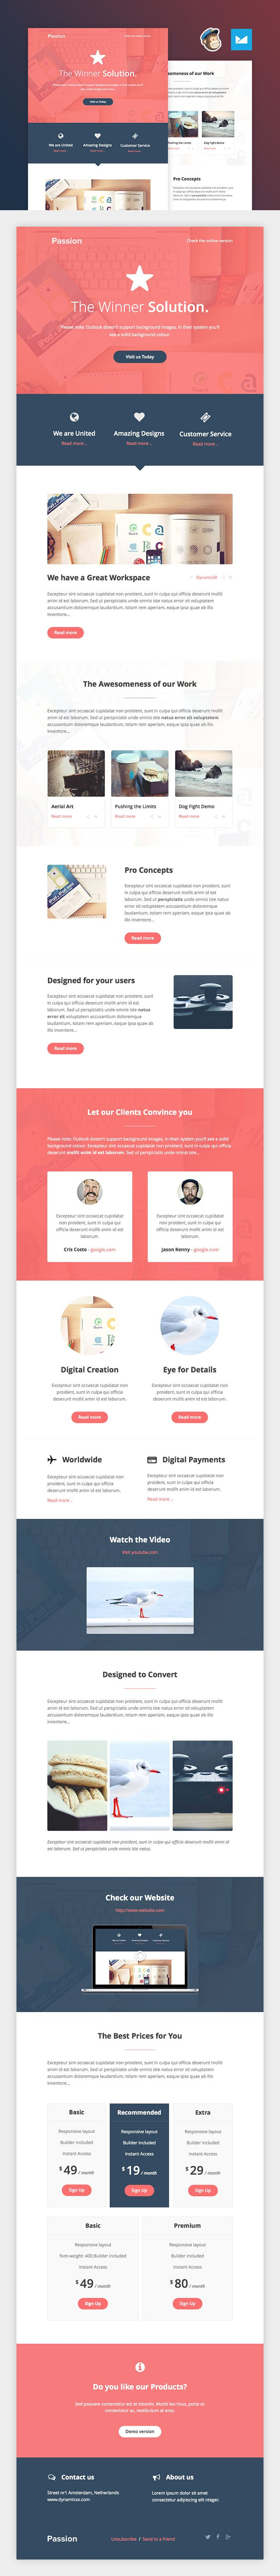 The Passion Email Template